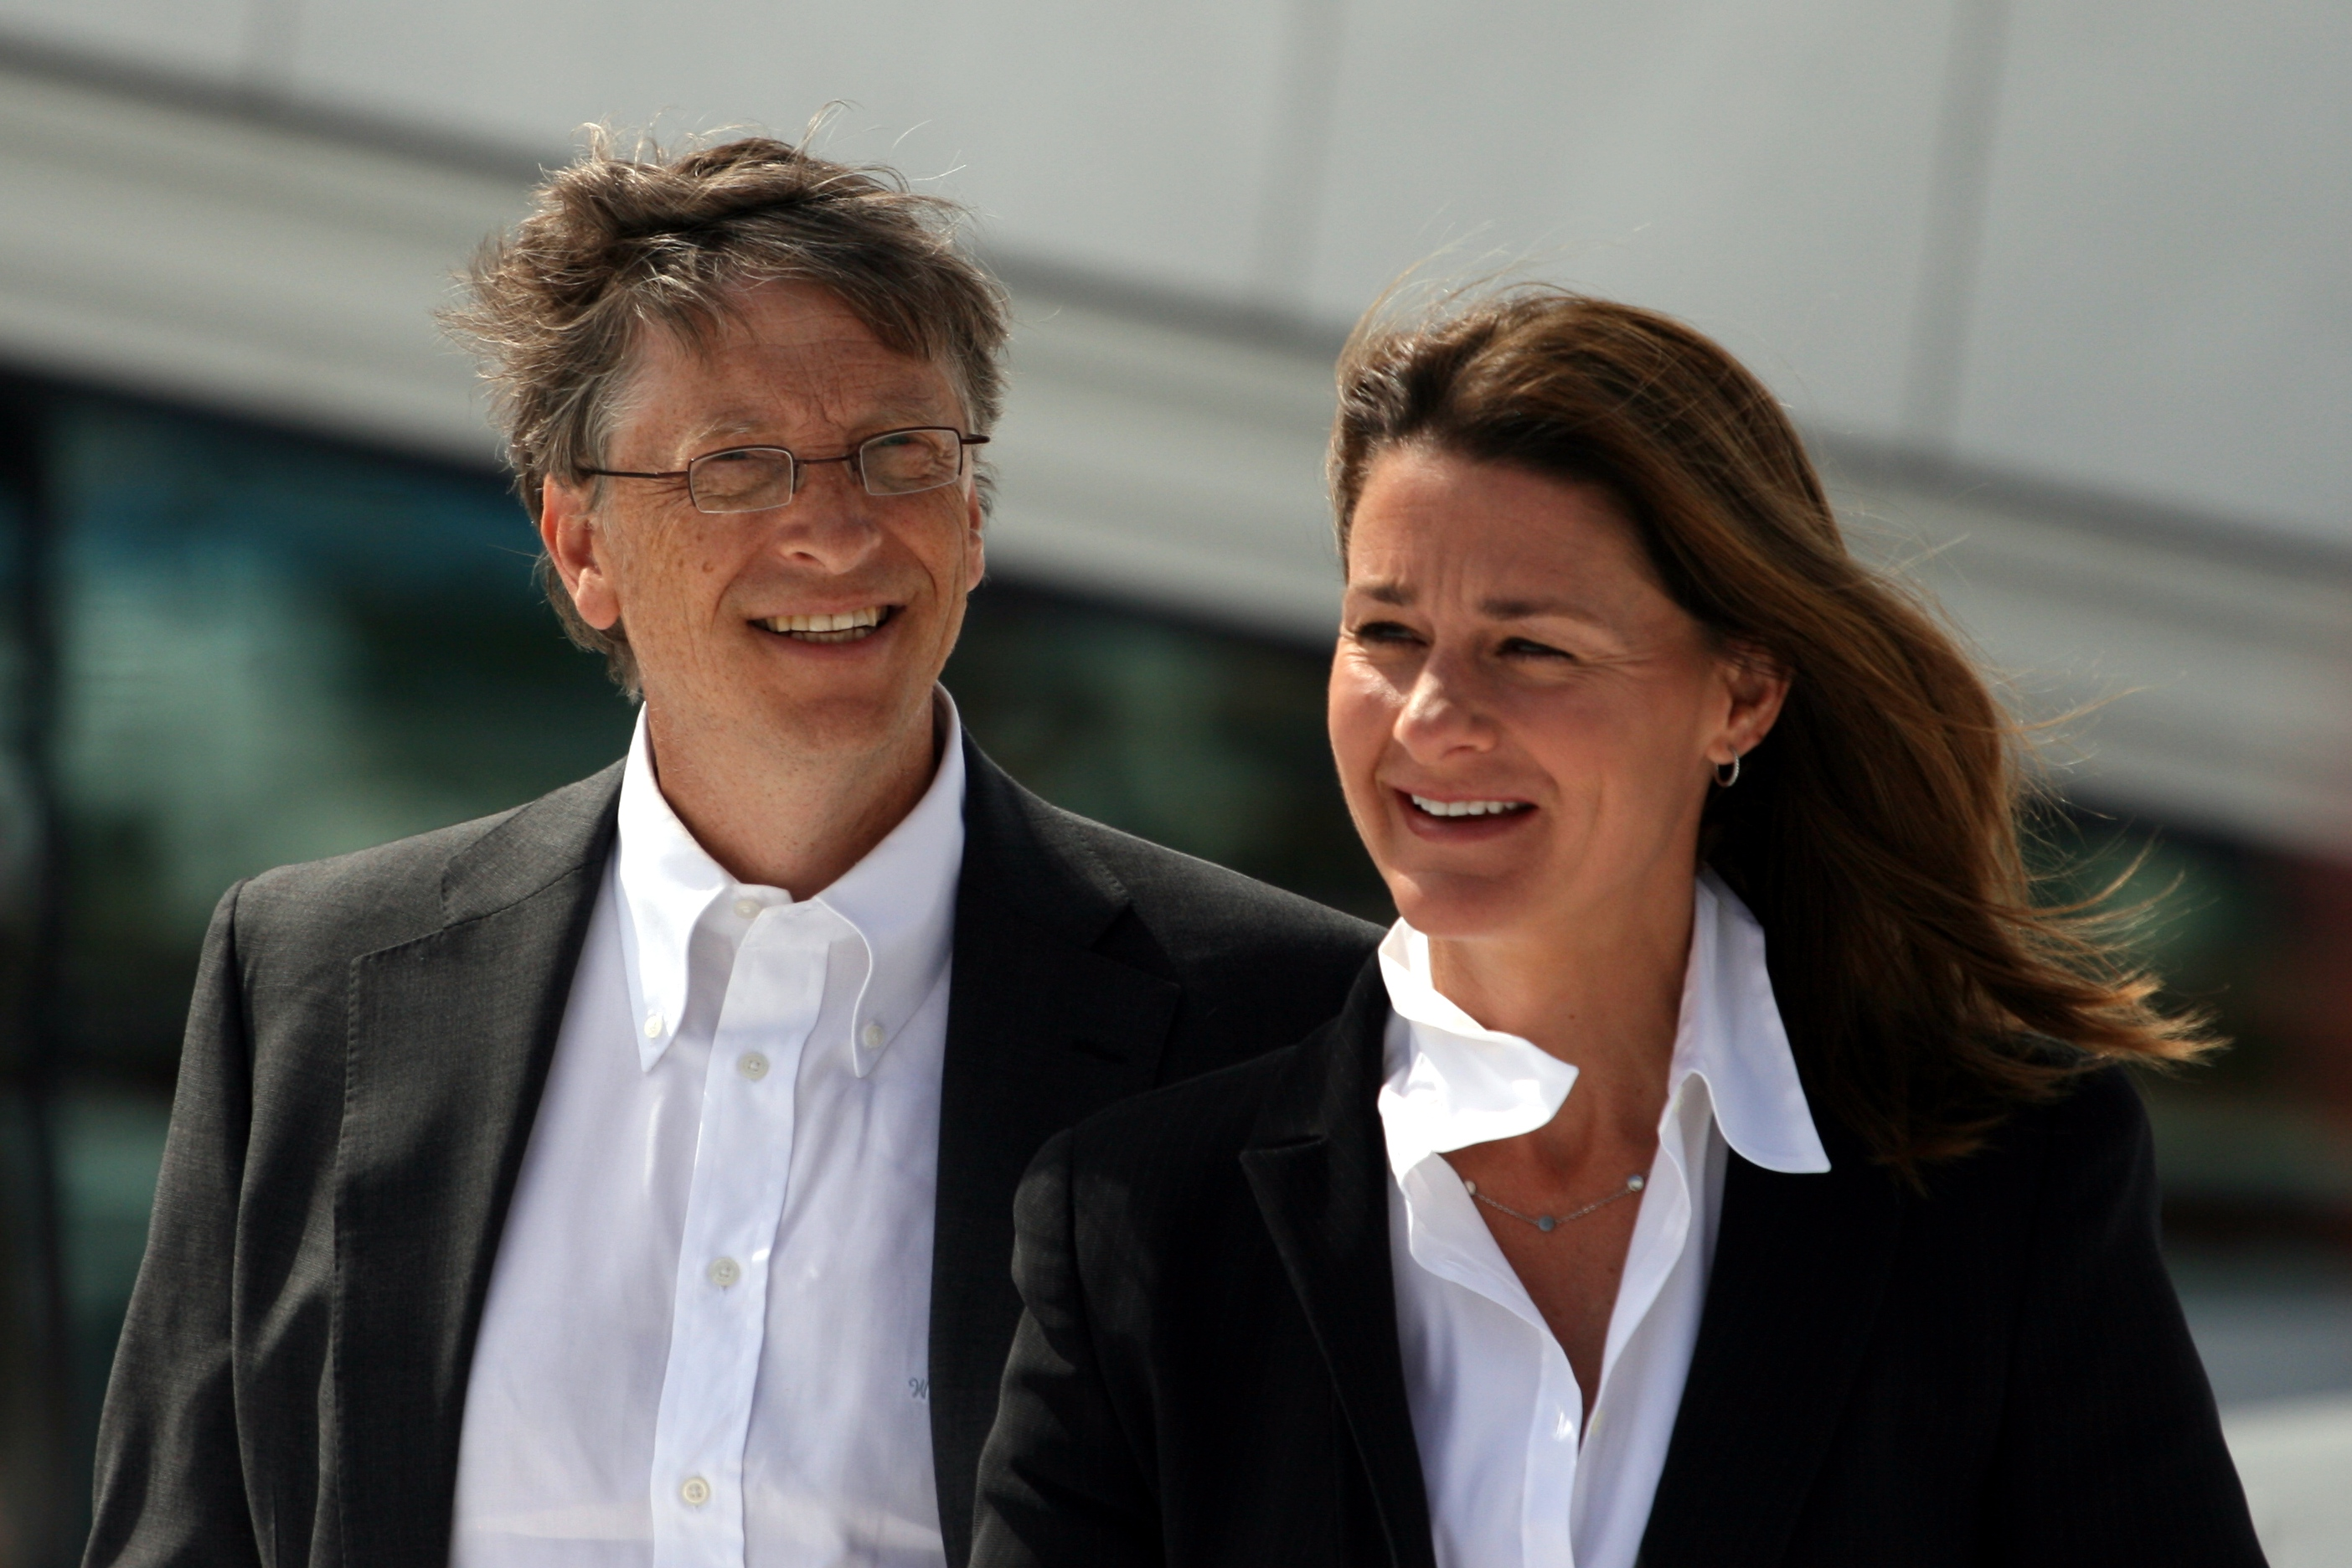 http://upload.wikimedia.org/wikipedia/commons/2/28/Bill_og_Melinda_Gates_2009-06-03_(bilde_01).JPG